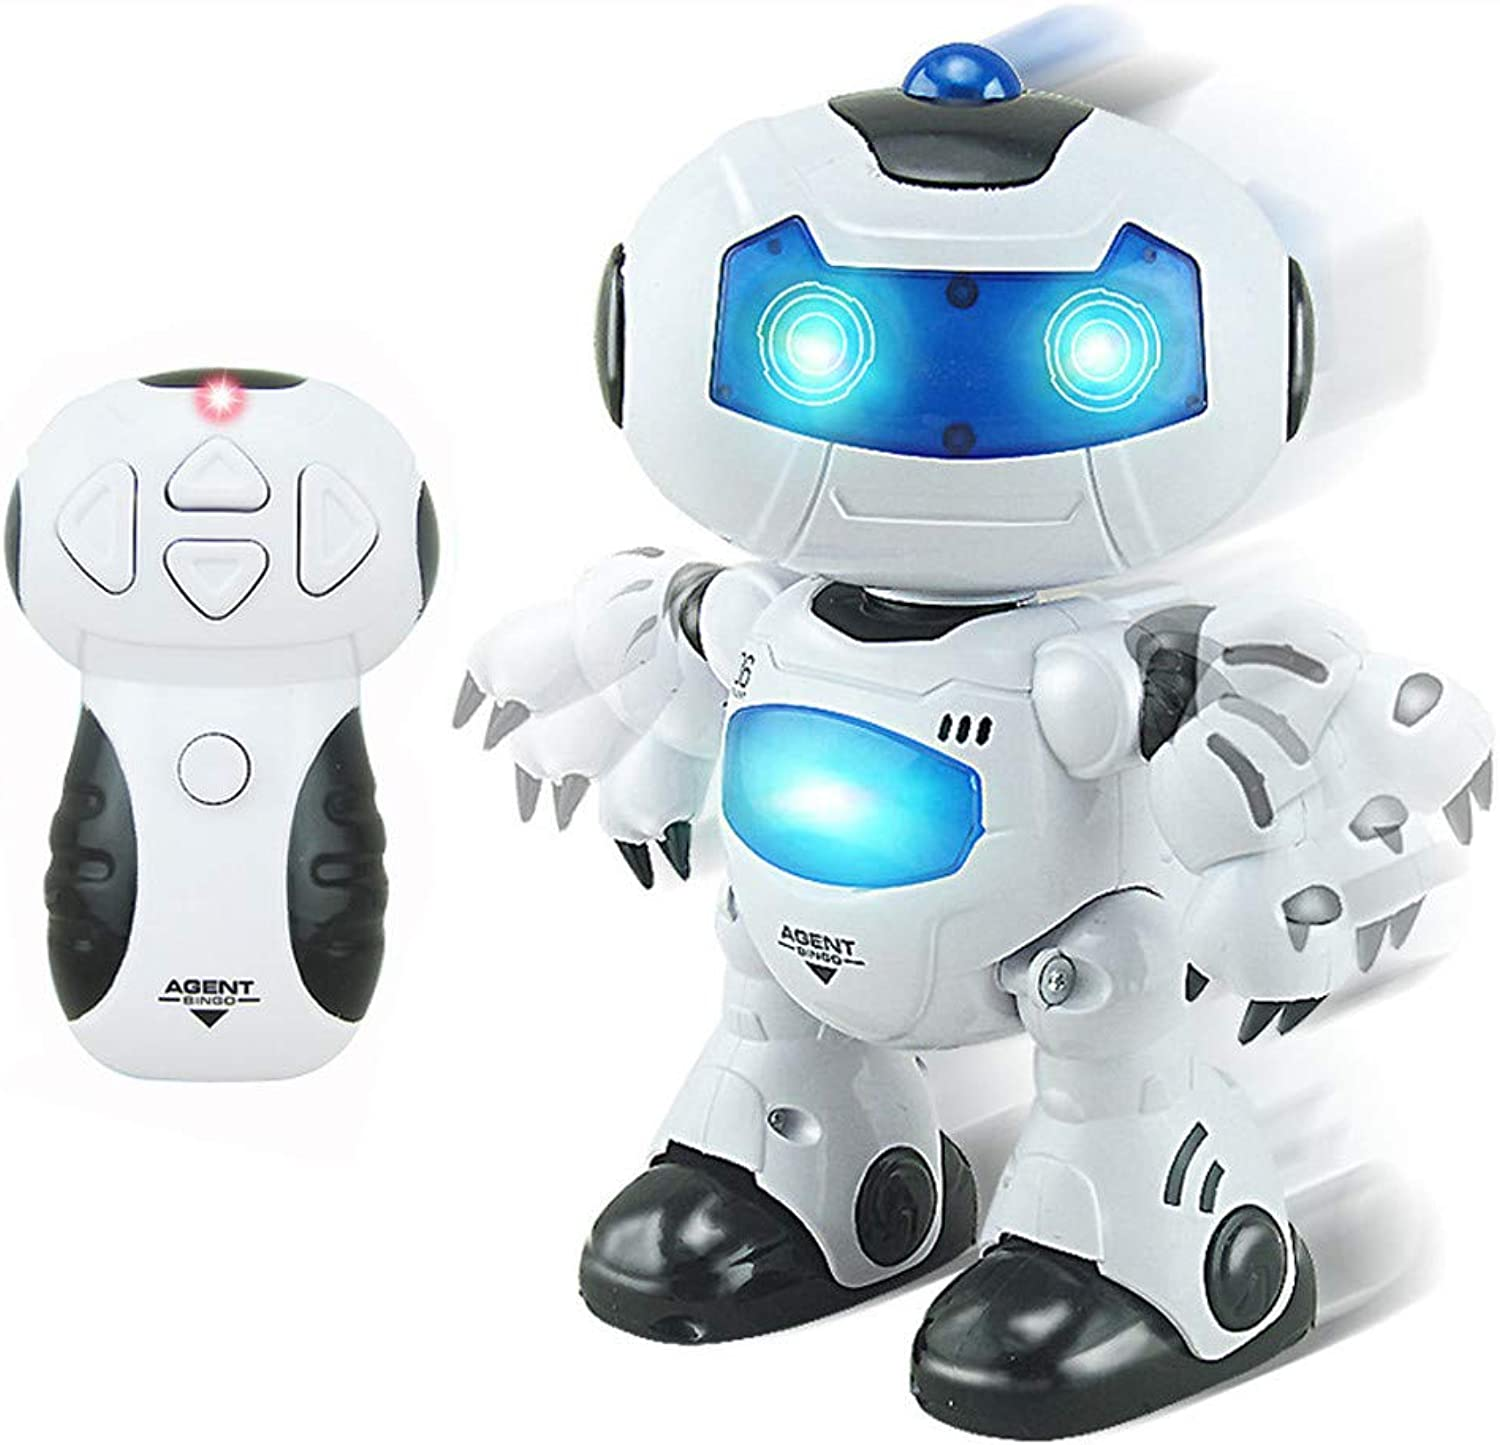 LAIHUISmart Robot Remote Control Electronic Walking Dancing Vocal Toy, Robot Toy Assistant Intelligent, RC Music & Light Robot Early Learning and Birthday Gift (White)